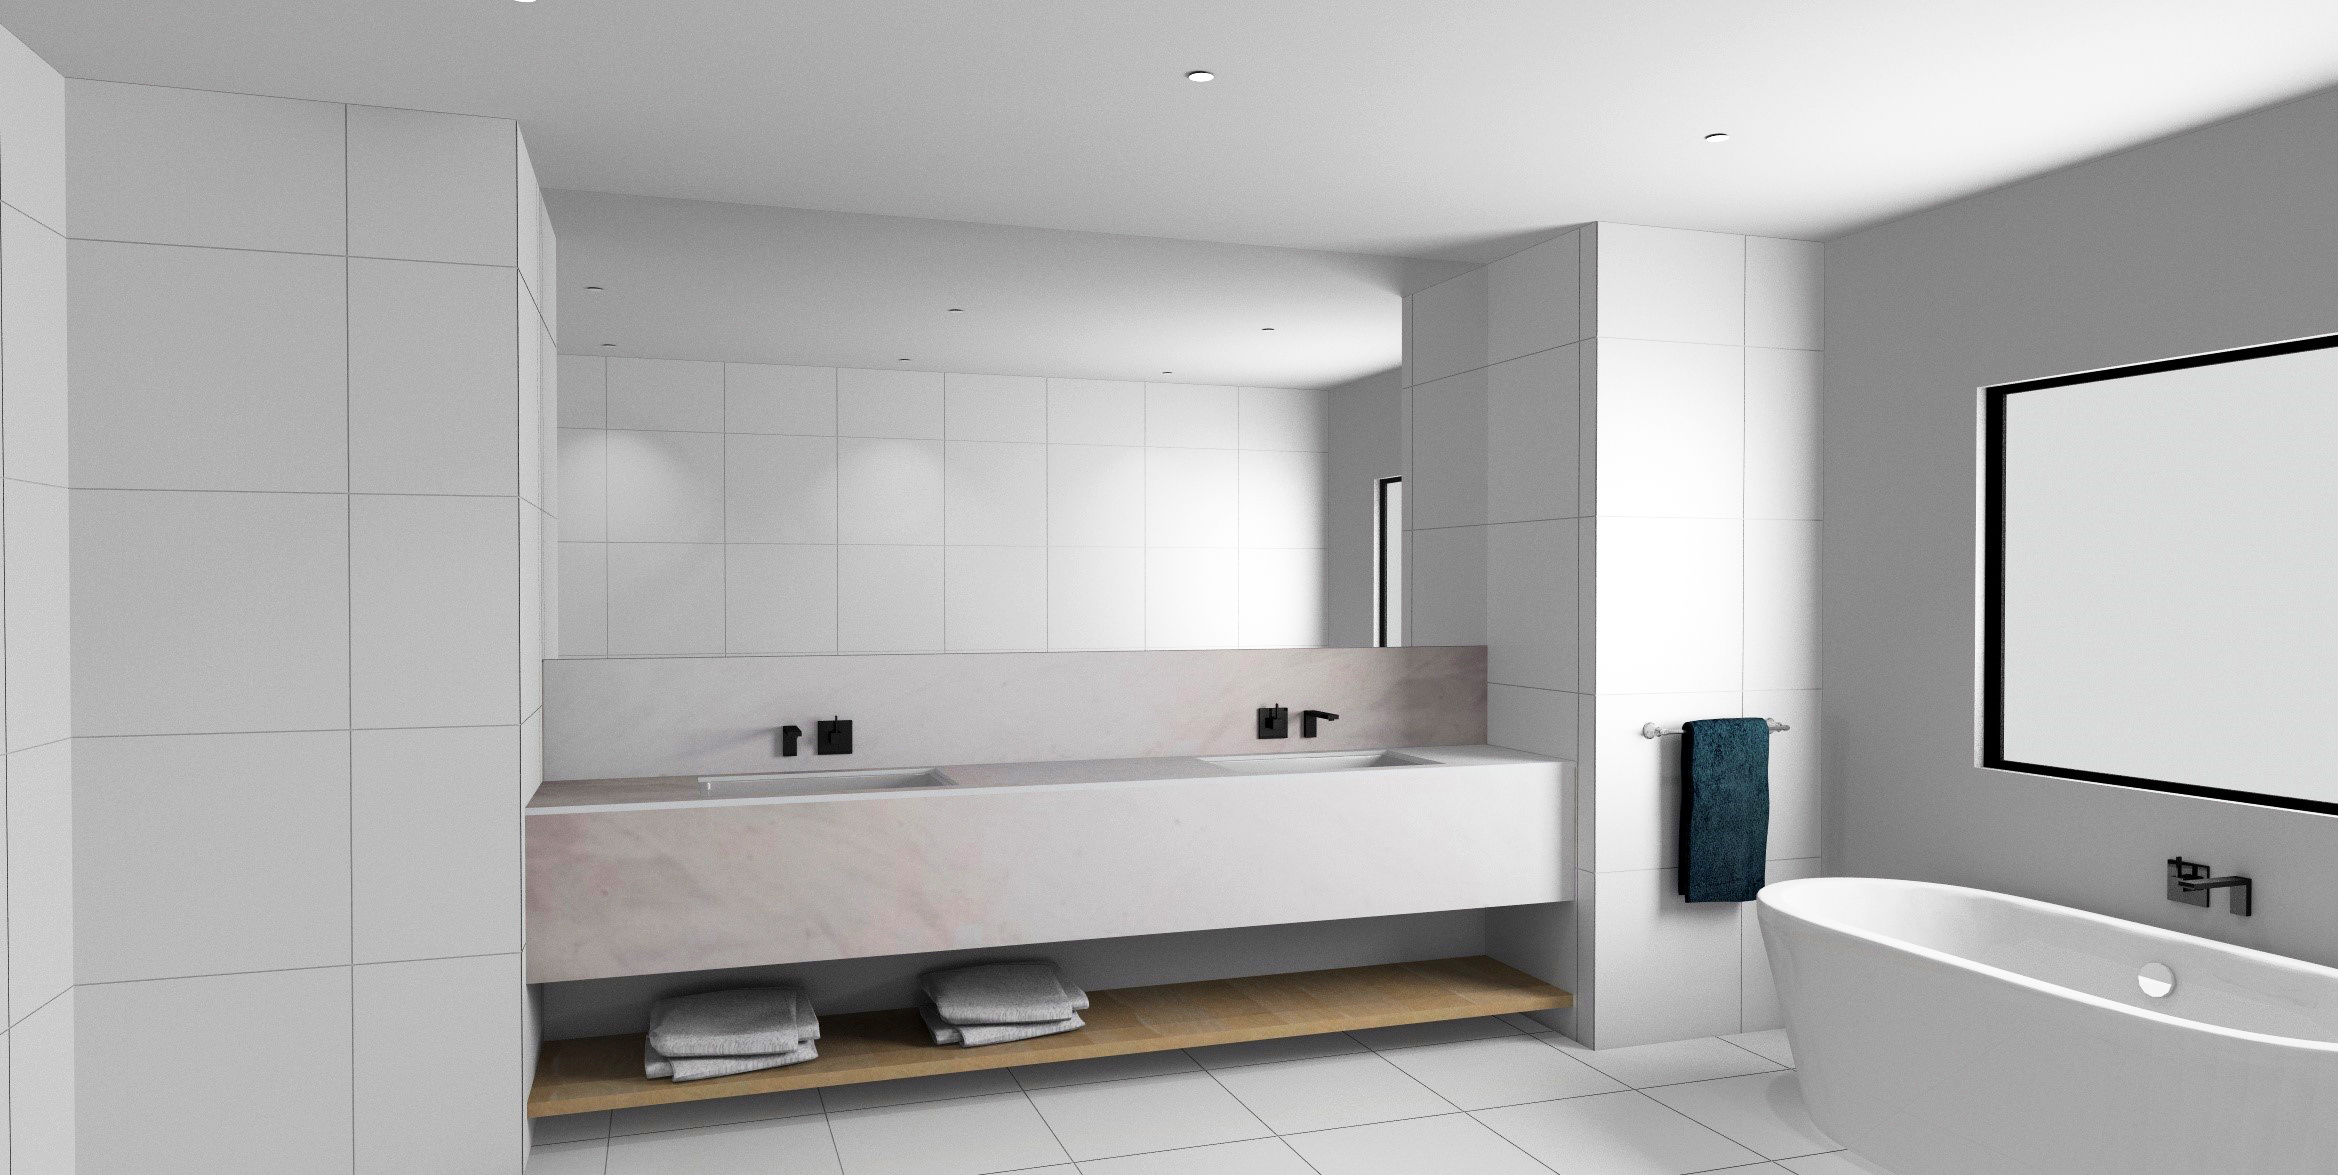 A 3D bathroom render made with KD max